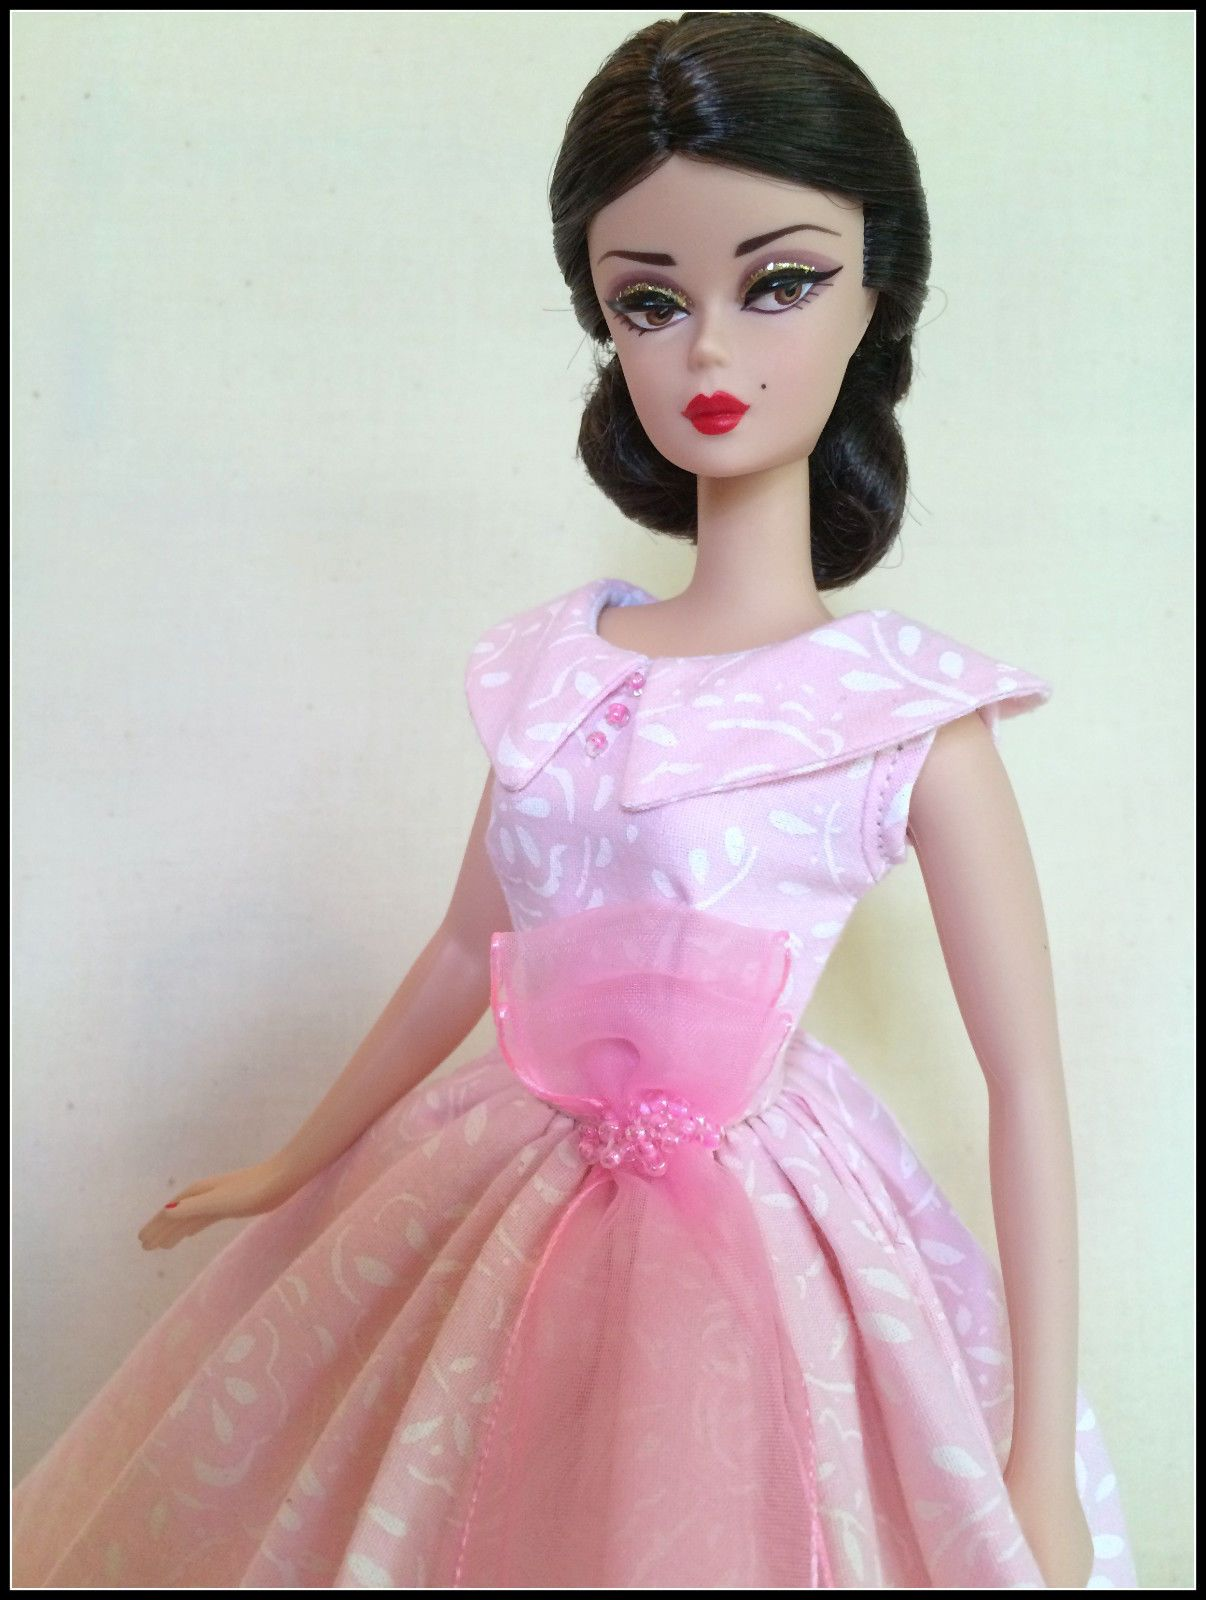 Handmade Dress For Silkstone Barbie By ~GINA~*Pastel Pink and White ...